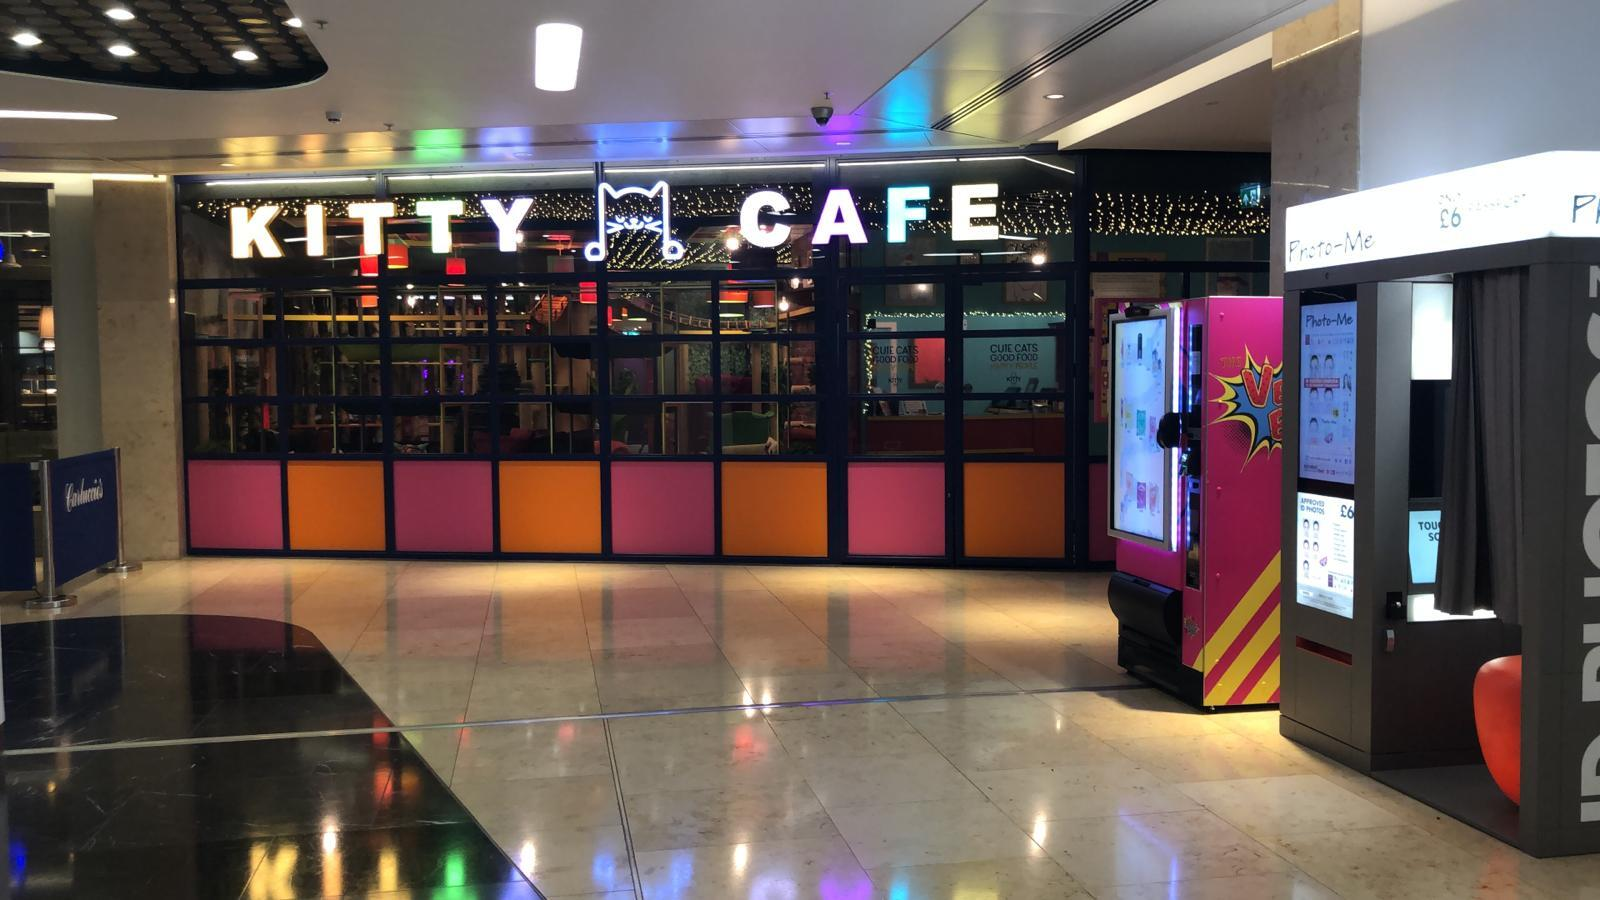 Outside-of-Kitty-Cafe-Birmingham.jpeg#asset:411